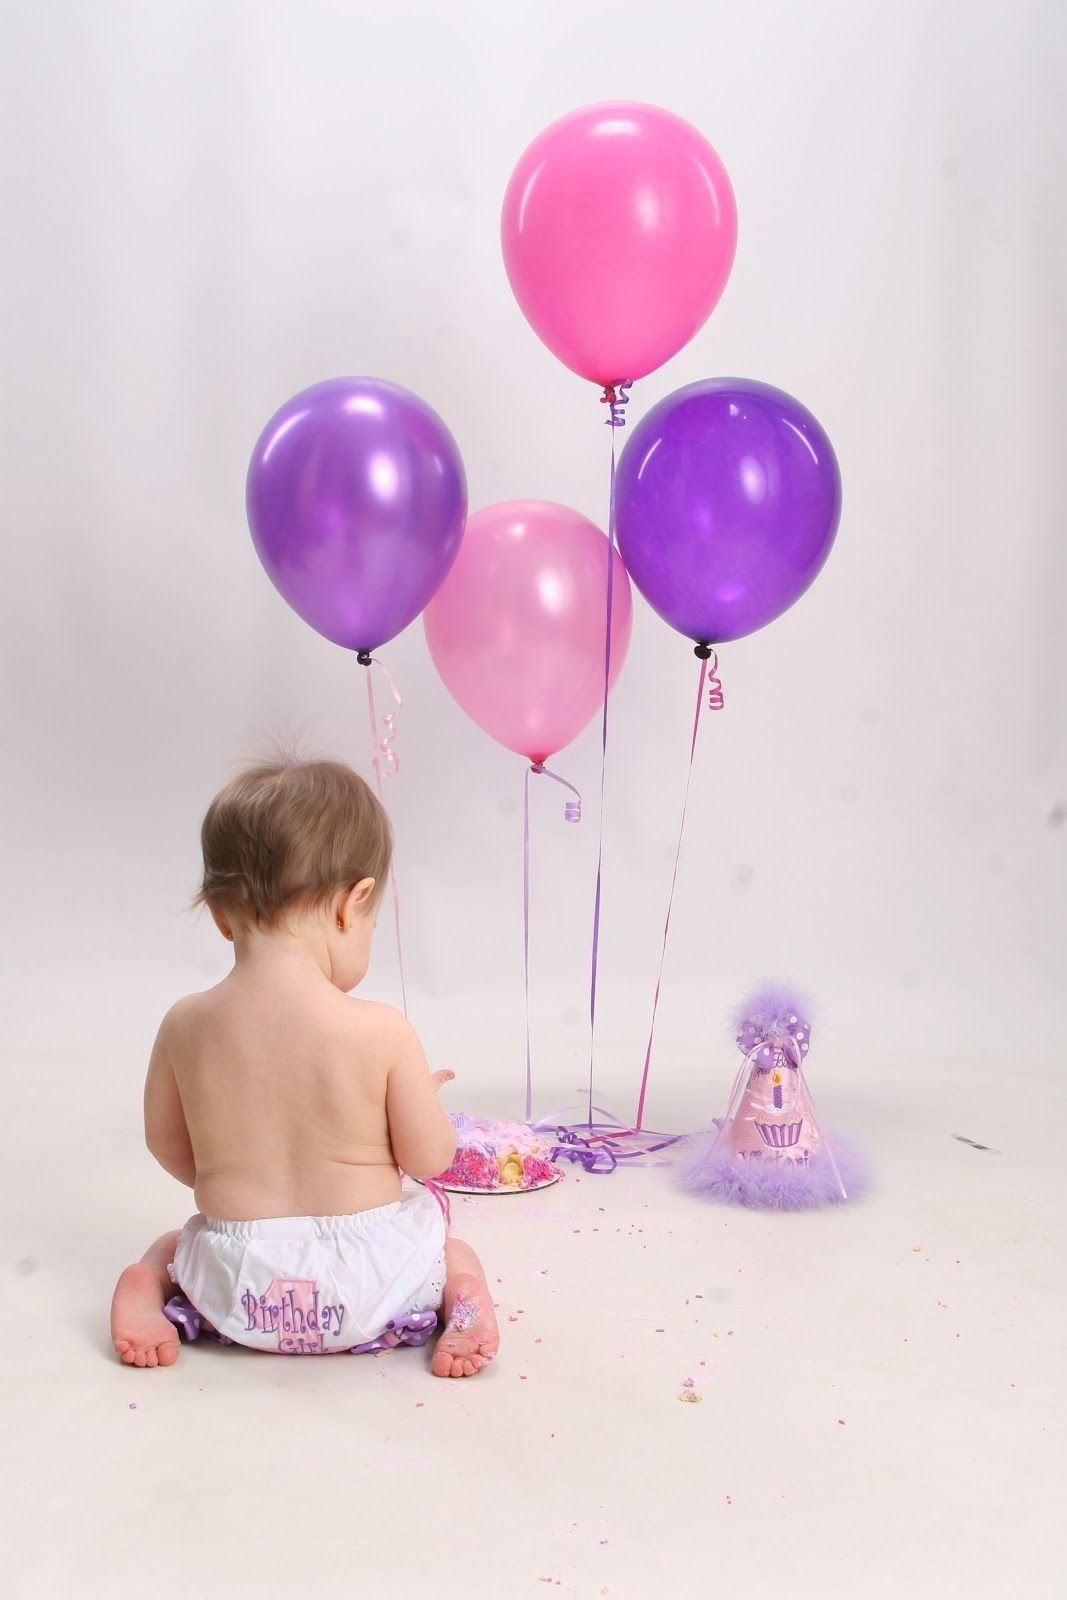 10 Fabulous 1St Birthday Photo Shoot Ideas 1st birthday photo shoot ideas google search photoshoot ideas 2020